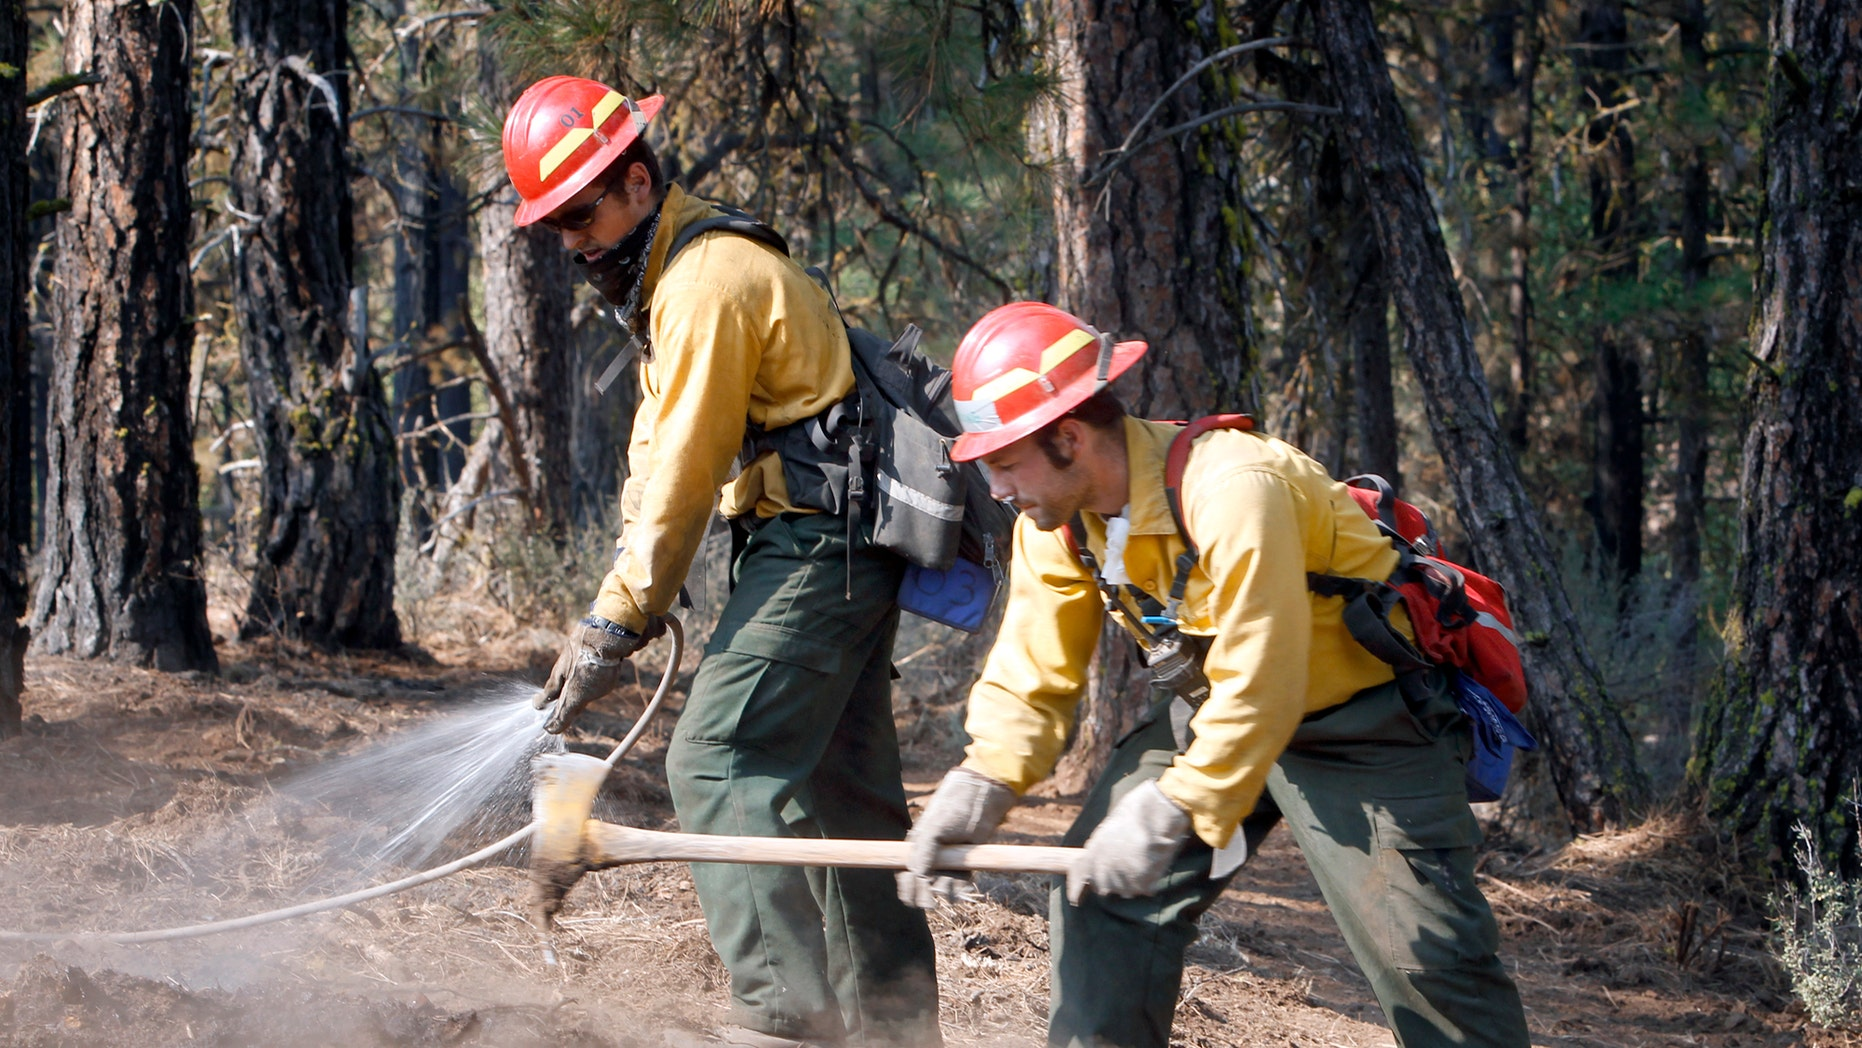 September 10: Alex George, left, and Kevin Weed of Glacier Peak Wildfire, Inc., extinguish hot spots along a fire line near Box Canyon Road on the eastern boundary of the Monastery Complex Fire in Yakima, Washington.